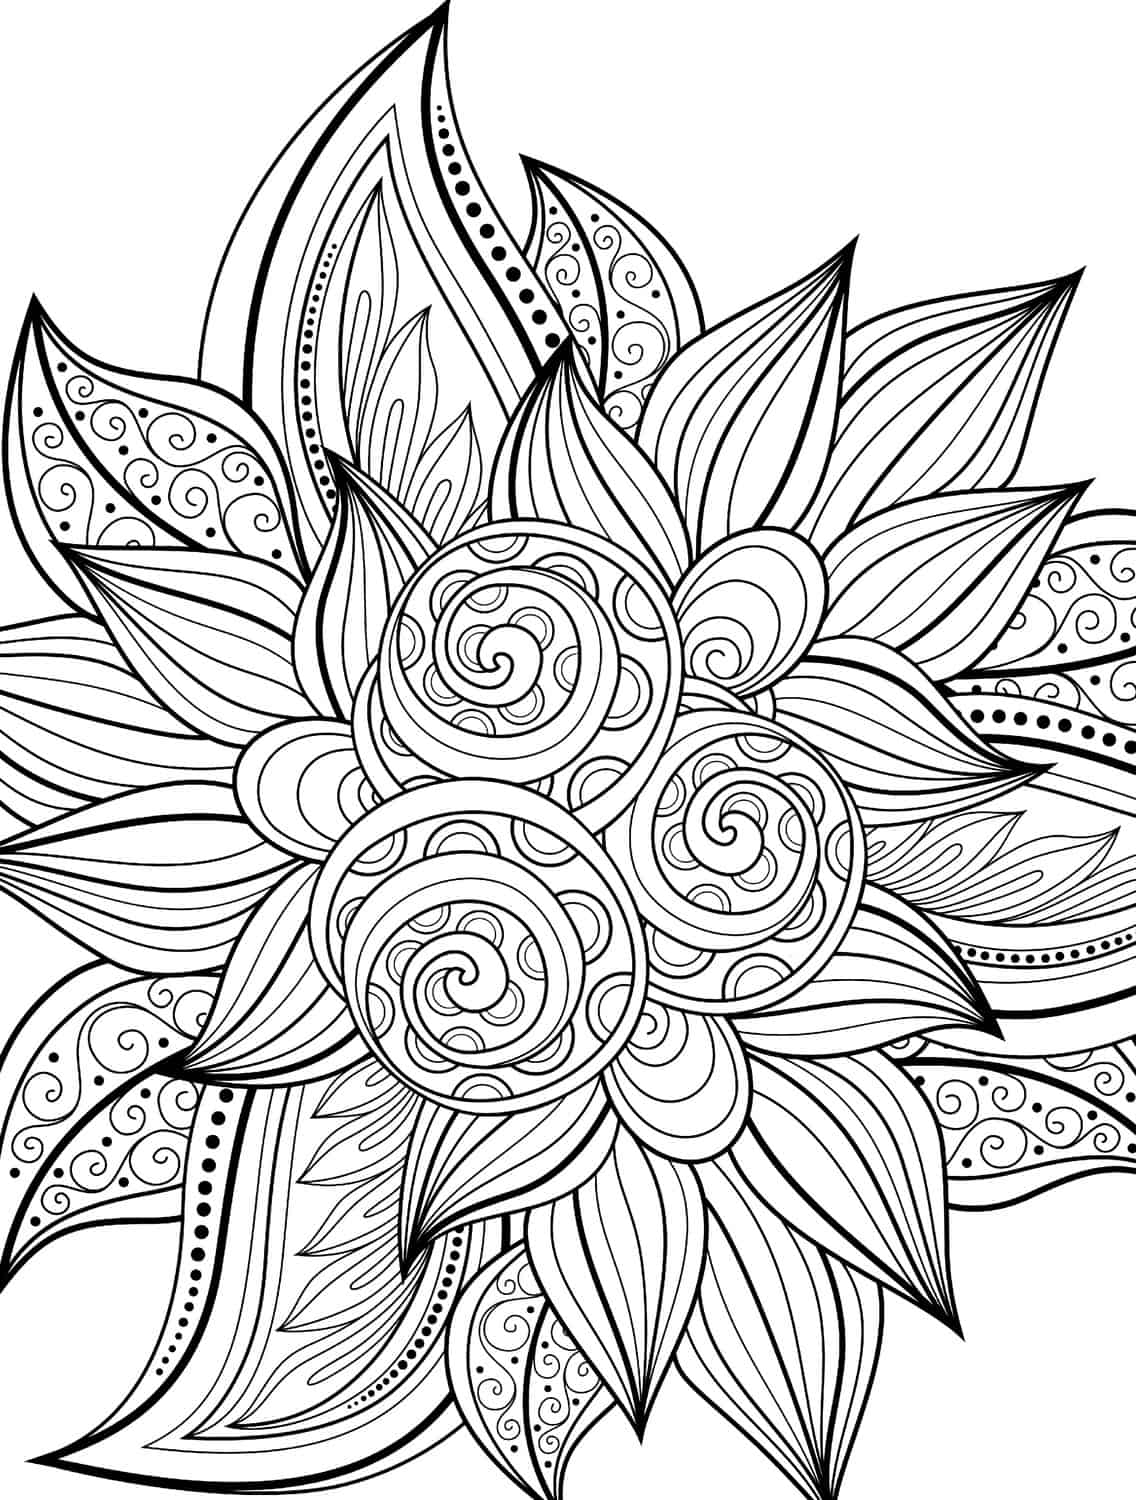 coloring pages online for adults 10 free printable holiday adult coloring pages pages for online coloring adults